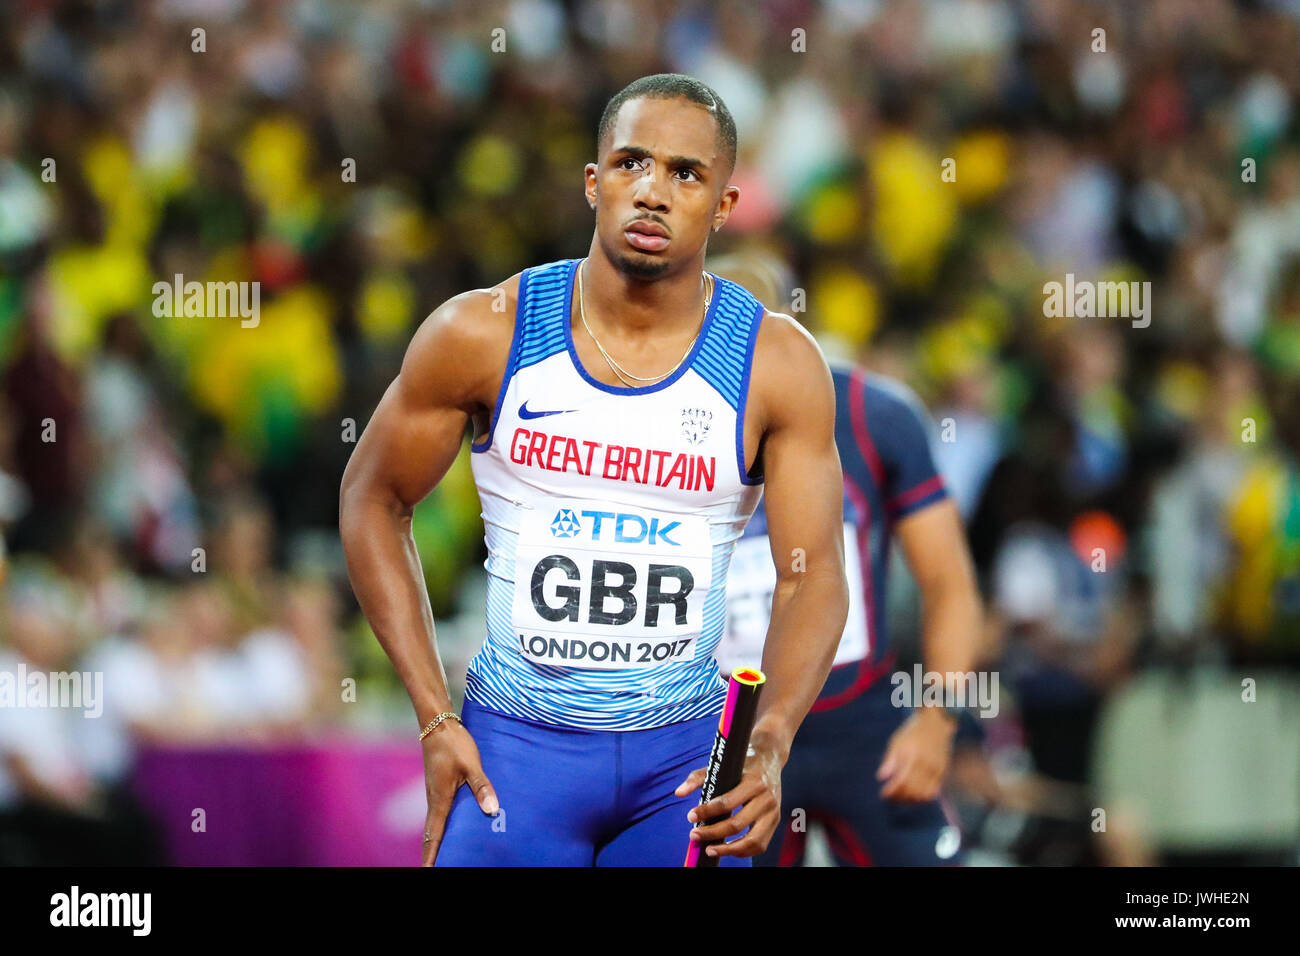 London, UK. 12th Aug, 2017. London, August 12 2017 . Chijindu Ujah at the start of the men's 4x 100m relay on day nine of the IAAF London 2017 world Championships at the London Stadium. Credit: Paul Davey/Alamy Live News - Stock Image